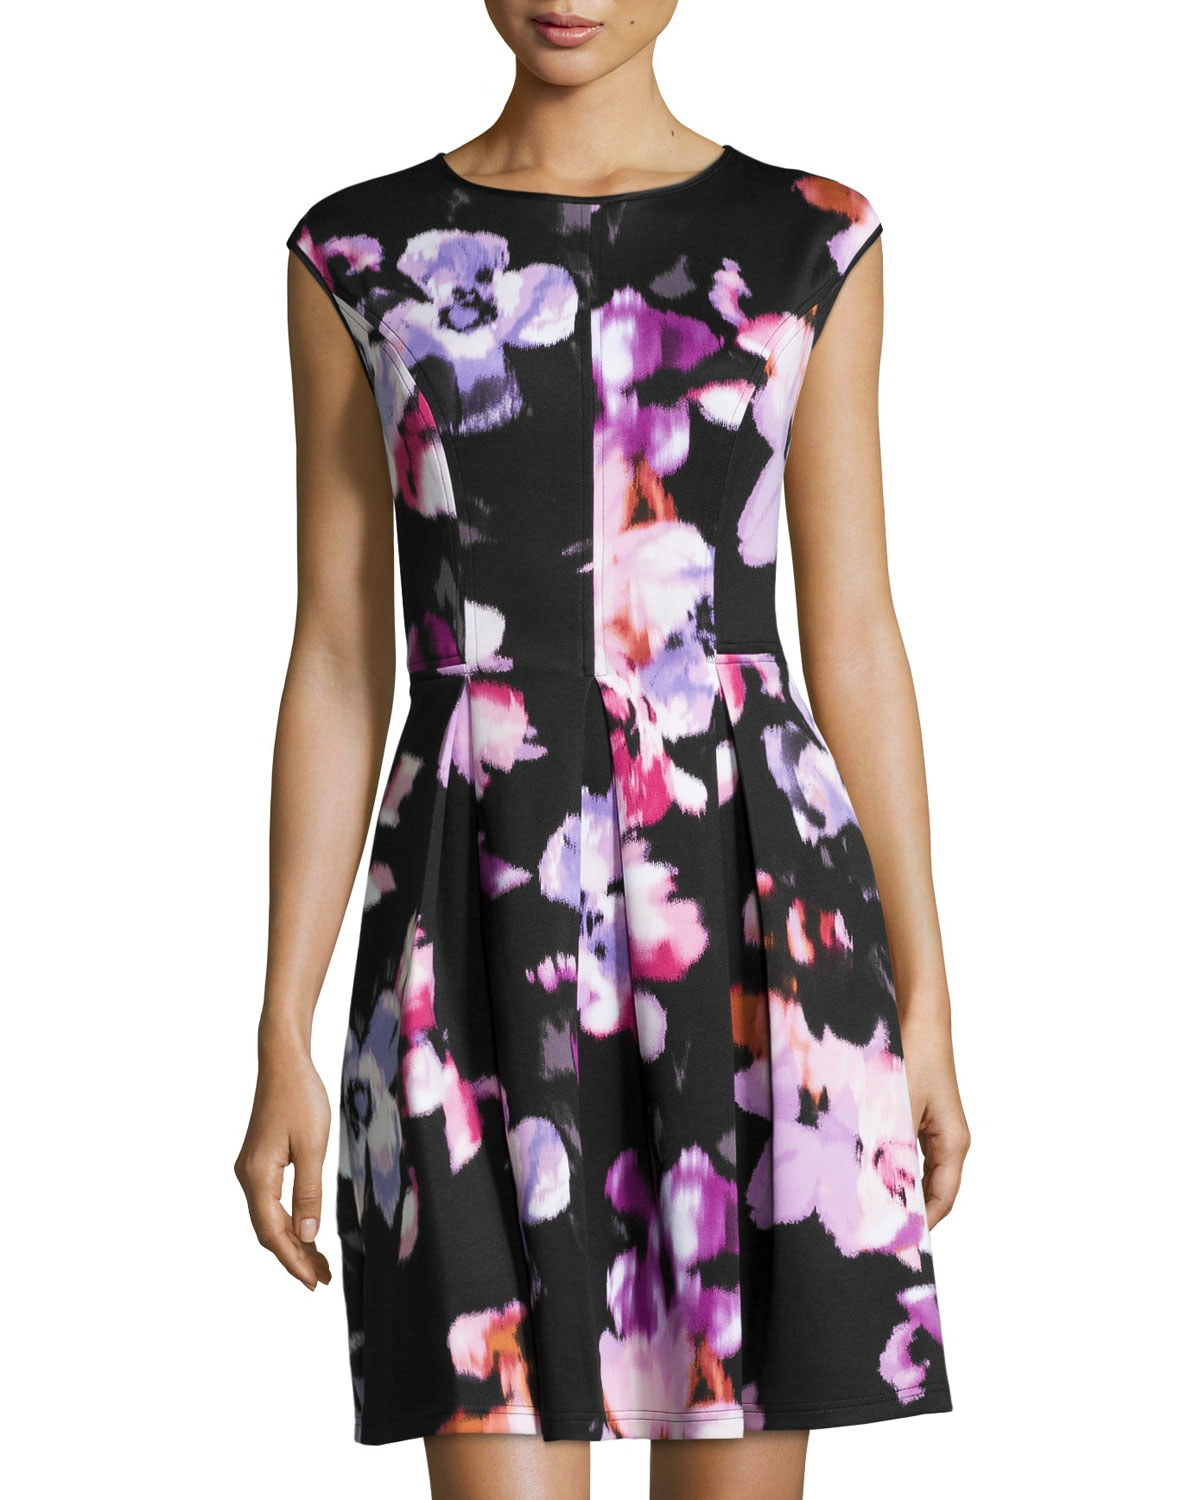 Lyst - Maggy London Fitted Floral Scuba Dress in Black